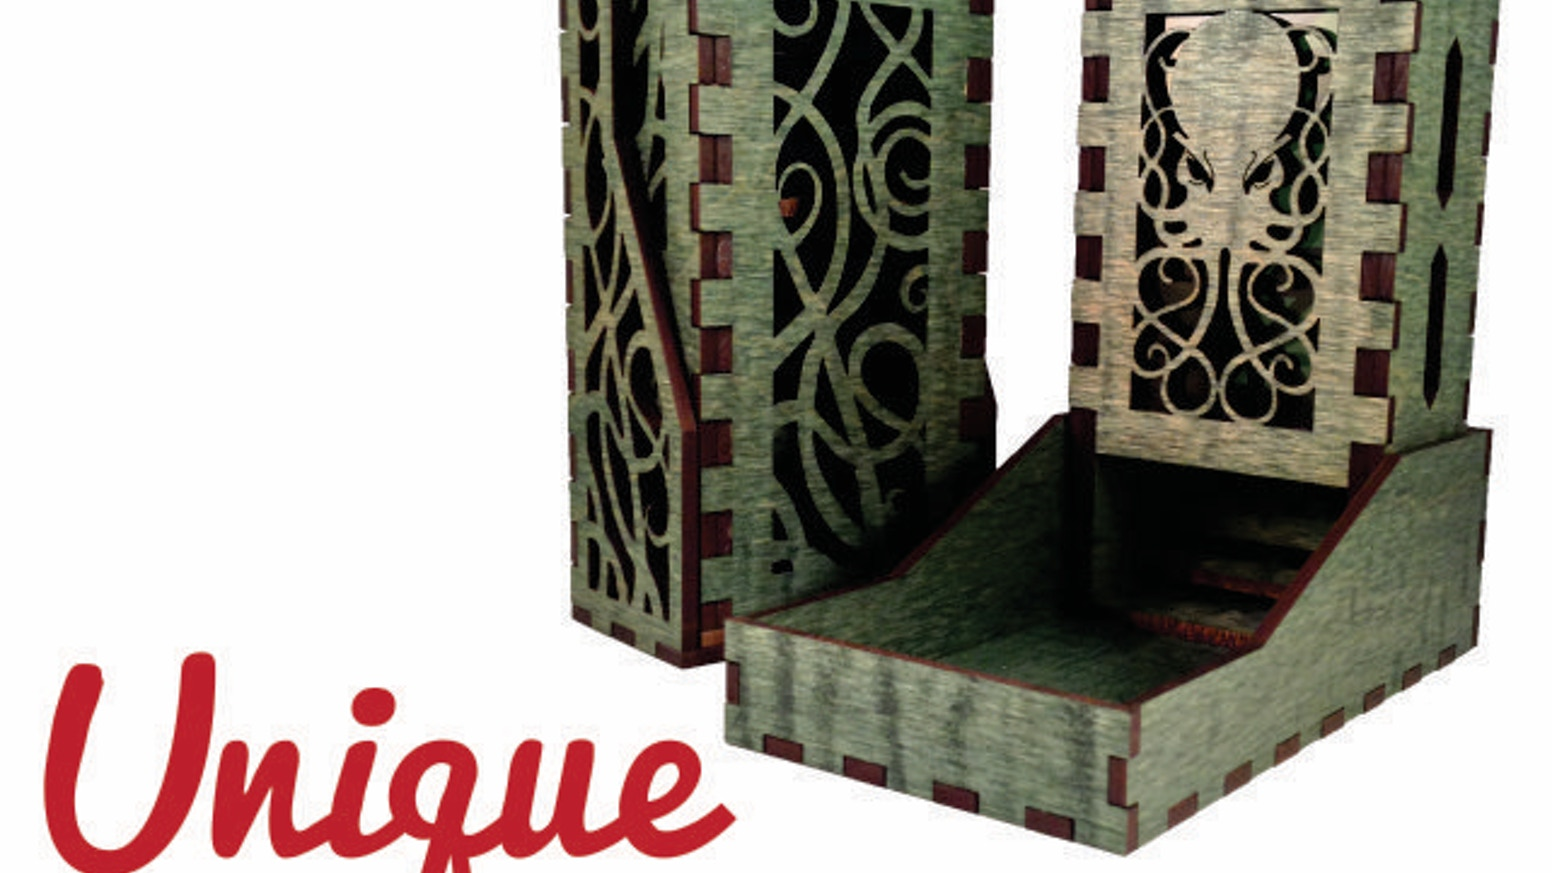 Unique Dice Towers adds individuality and fun to your game. Cthulhu adds chaos and insanity. Complete Cthulhu adds shock and awe!